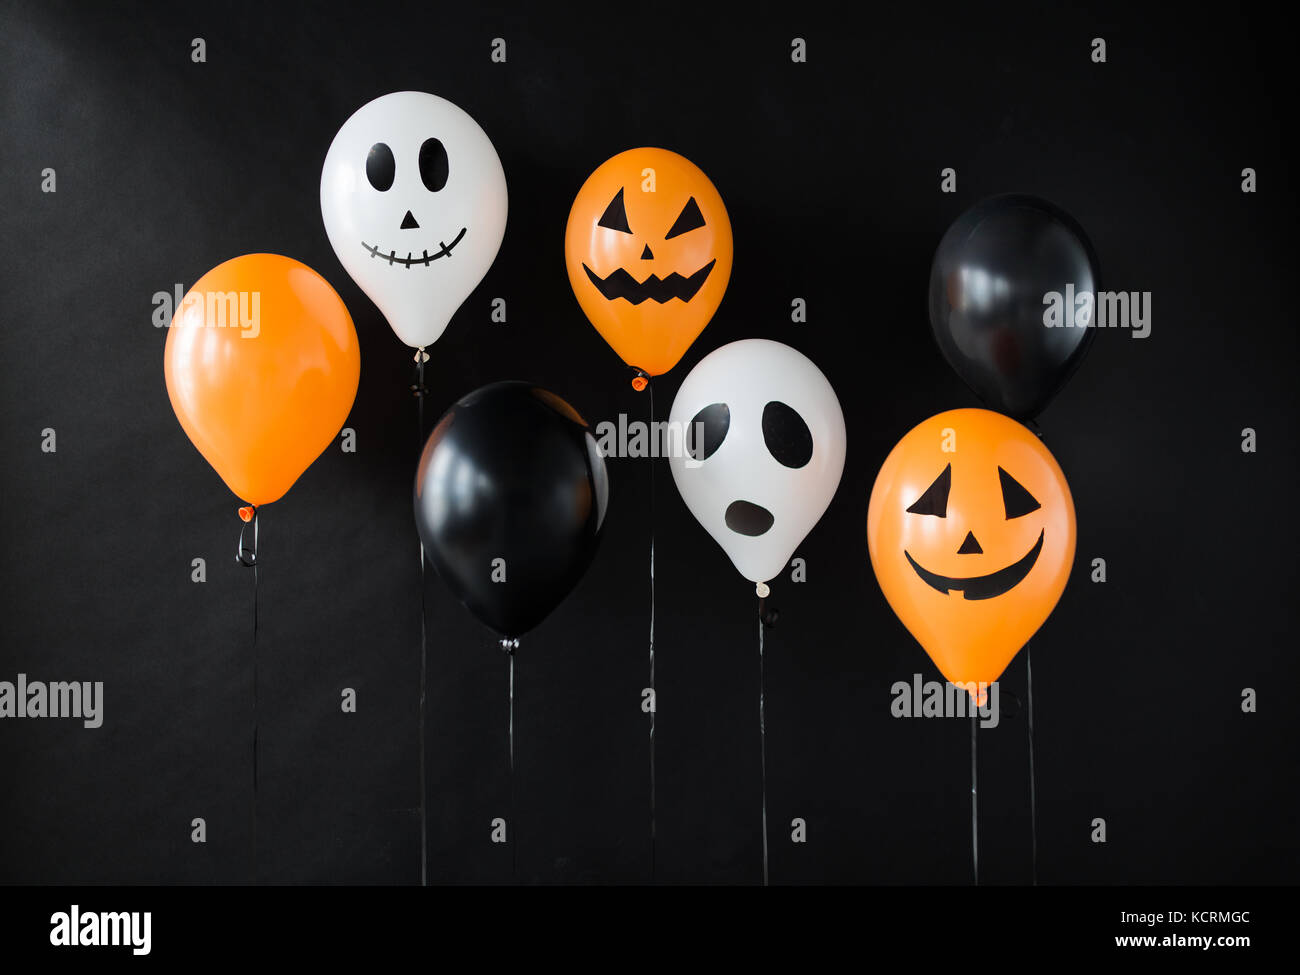 Décoration ballons air effrayant pour Halloween party Photo Stock